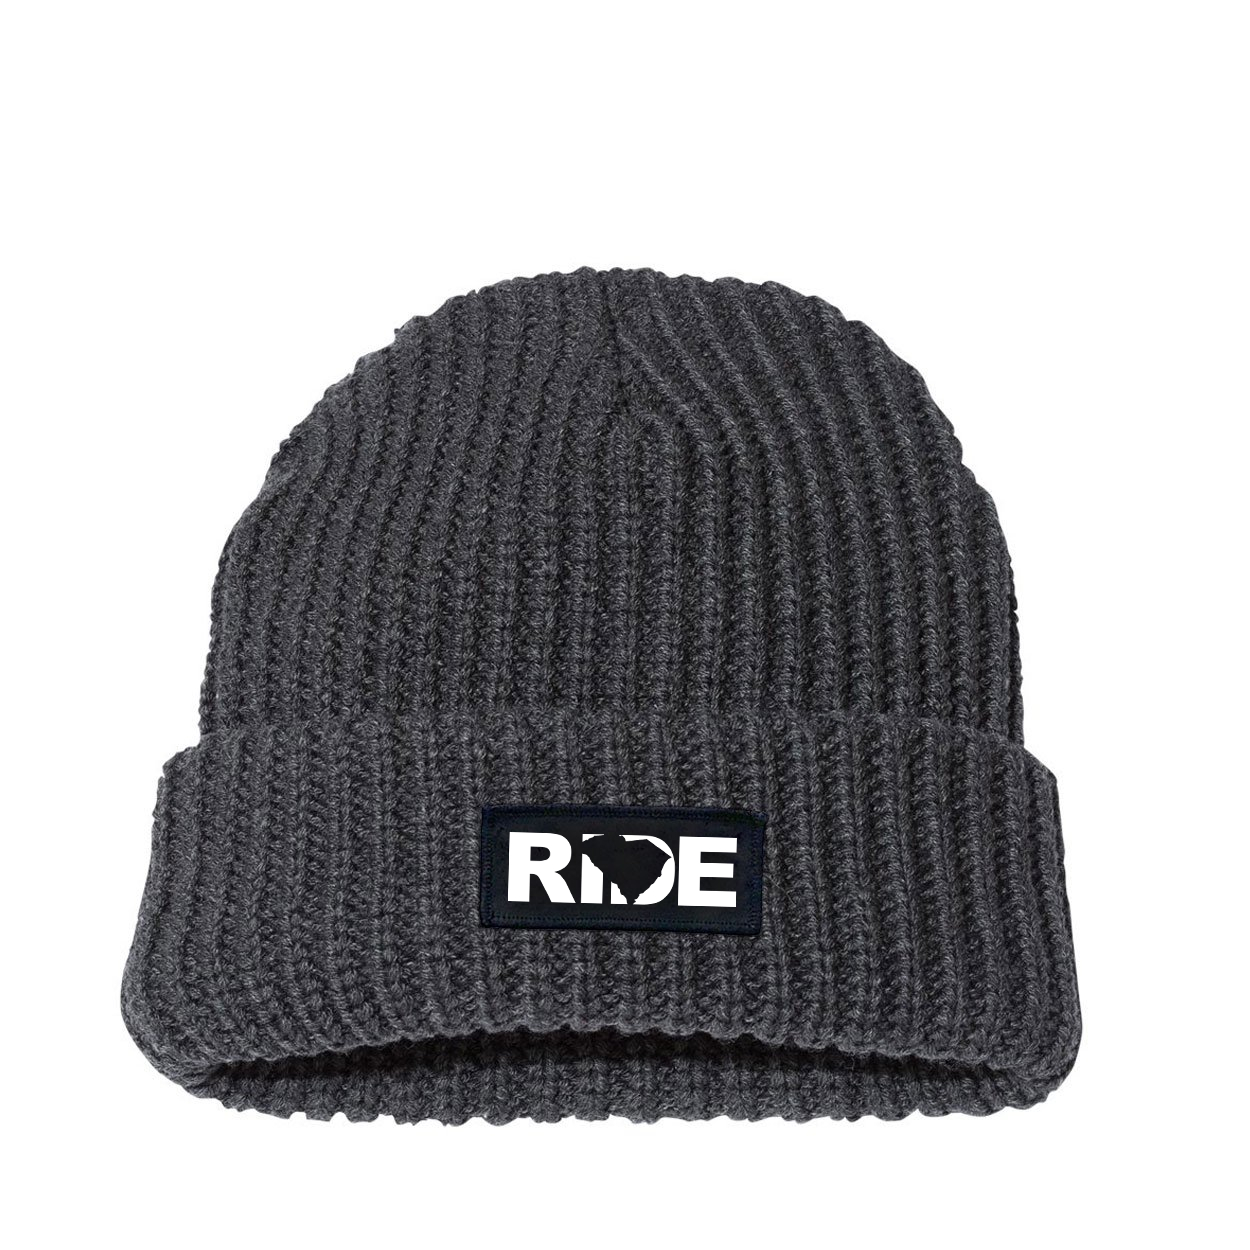 Ride South Carolina Night Out Woven Patch Roll Up Jumbo Chunky Knit Beanie Charcoal (White Logo)